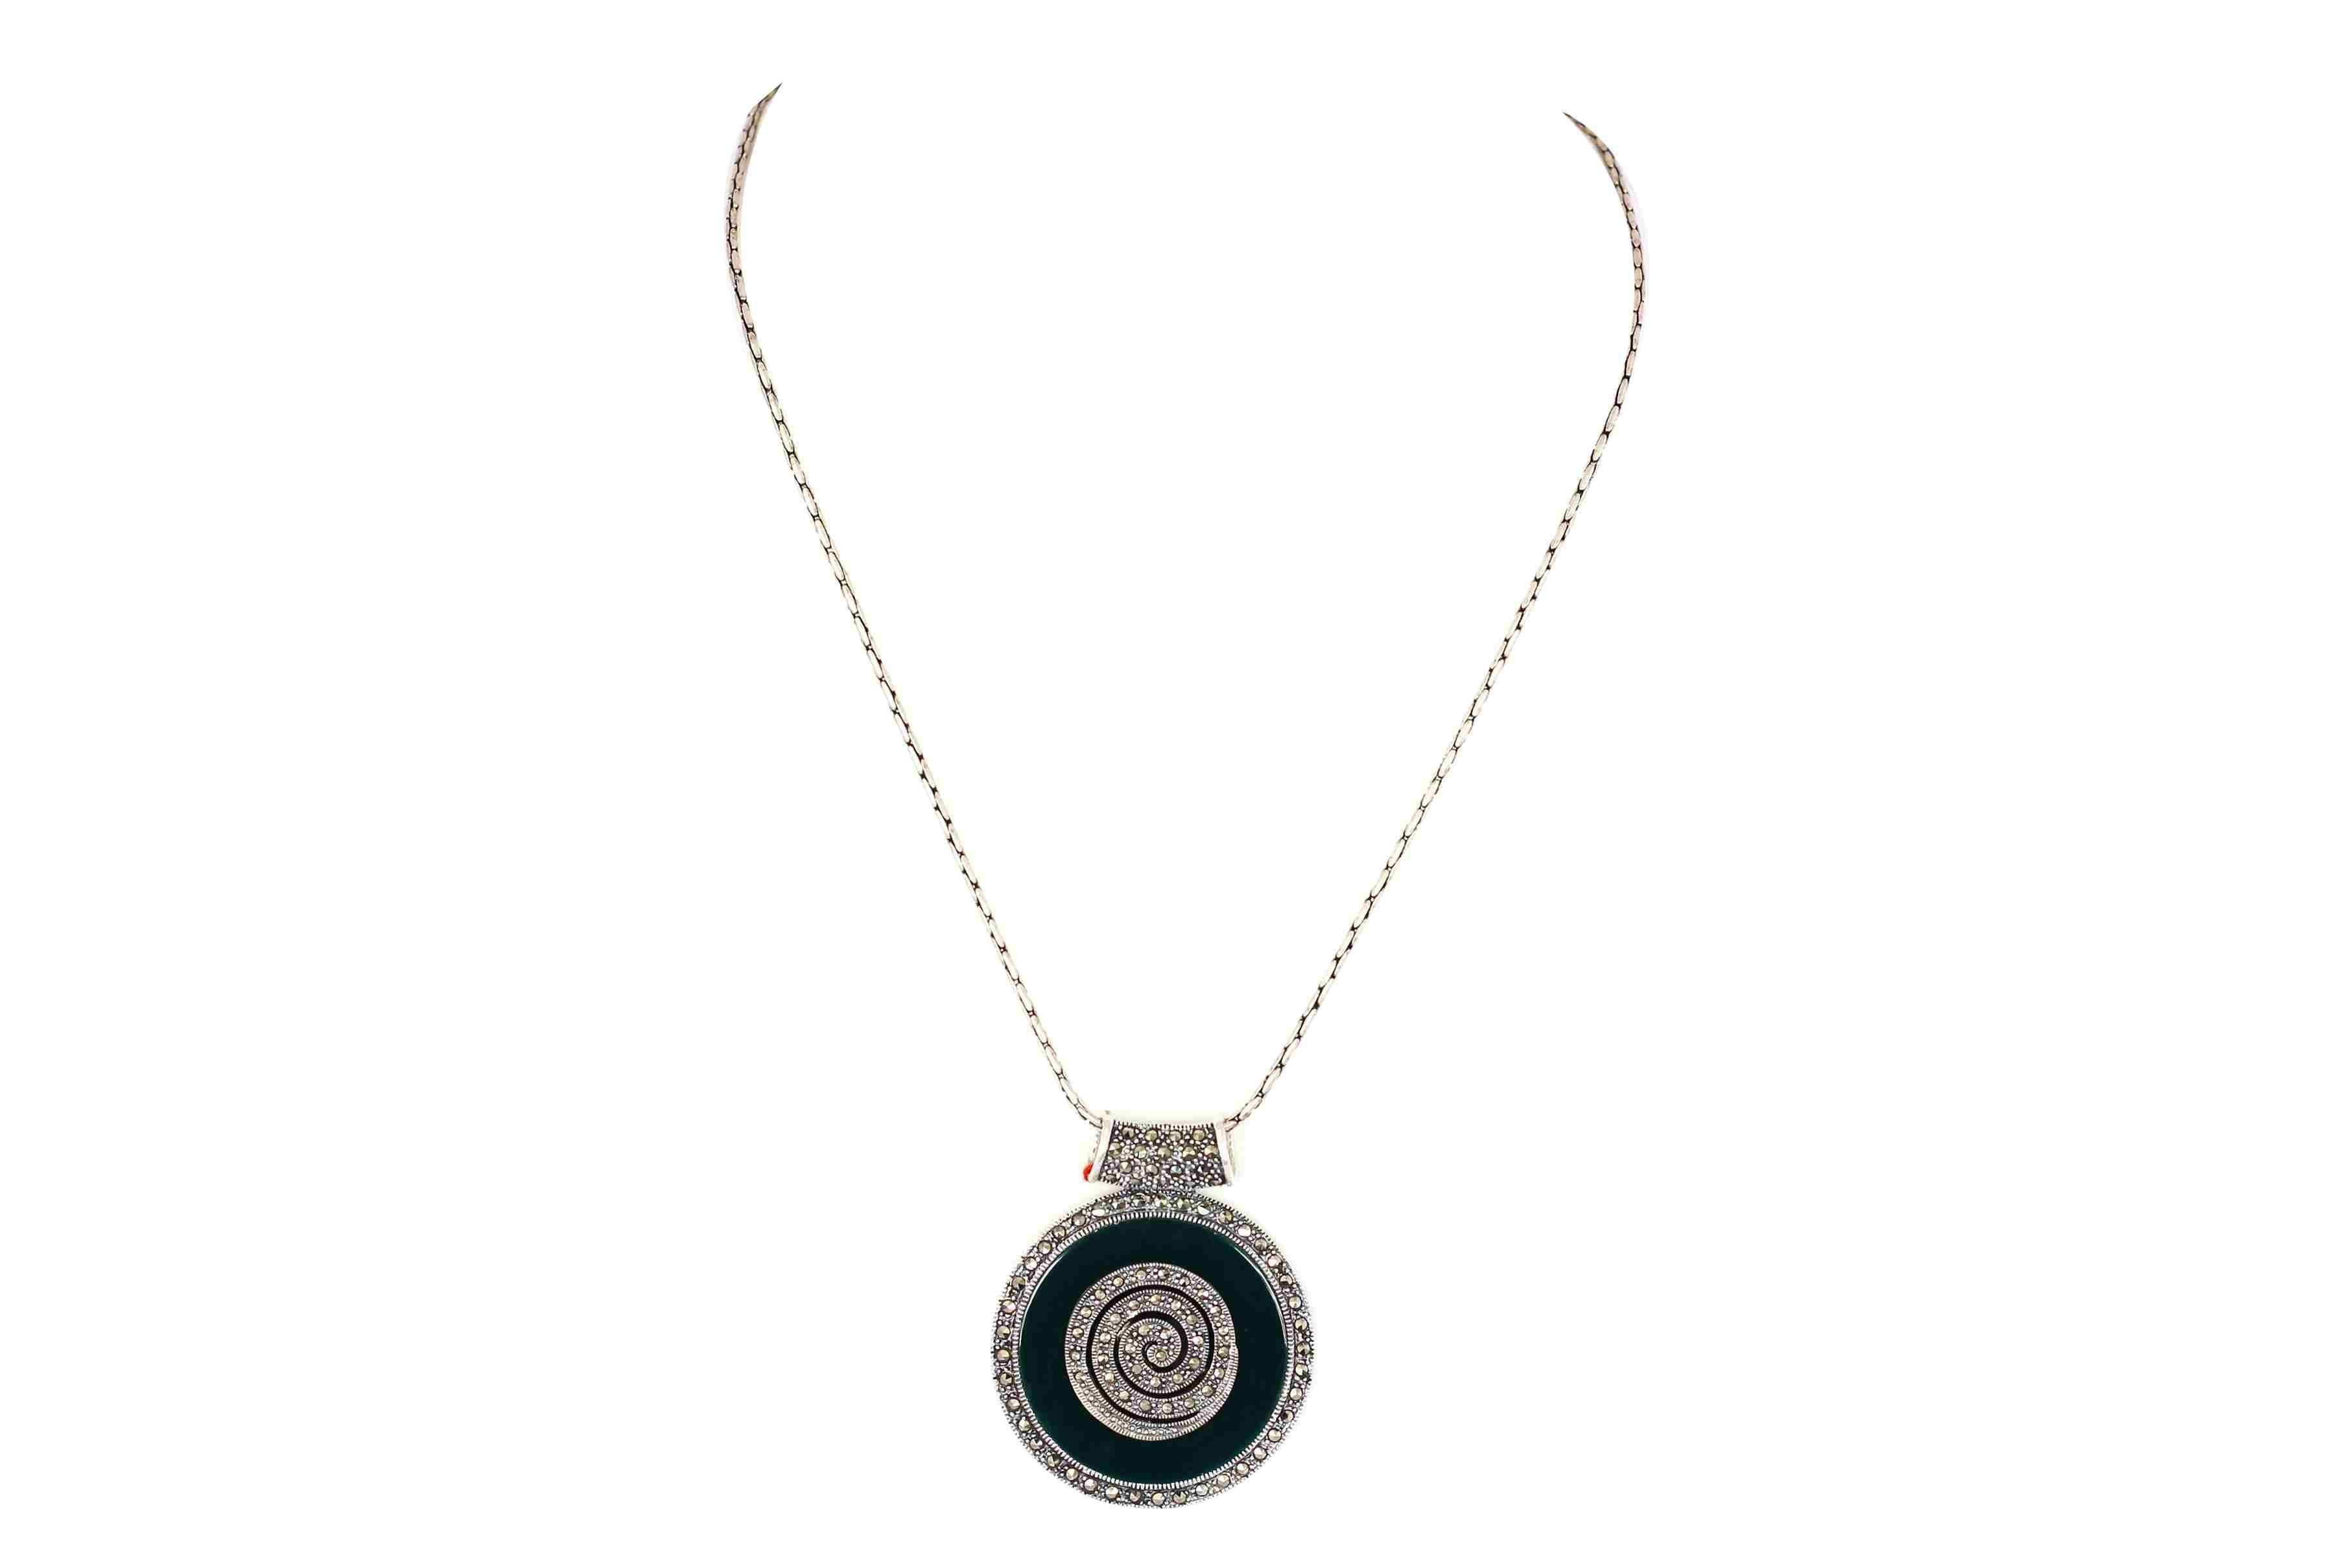 Black onyx with marcasite designer 4